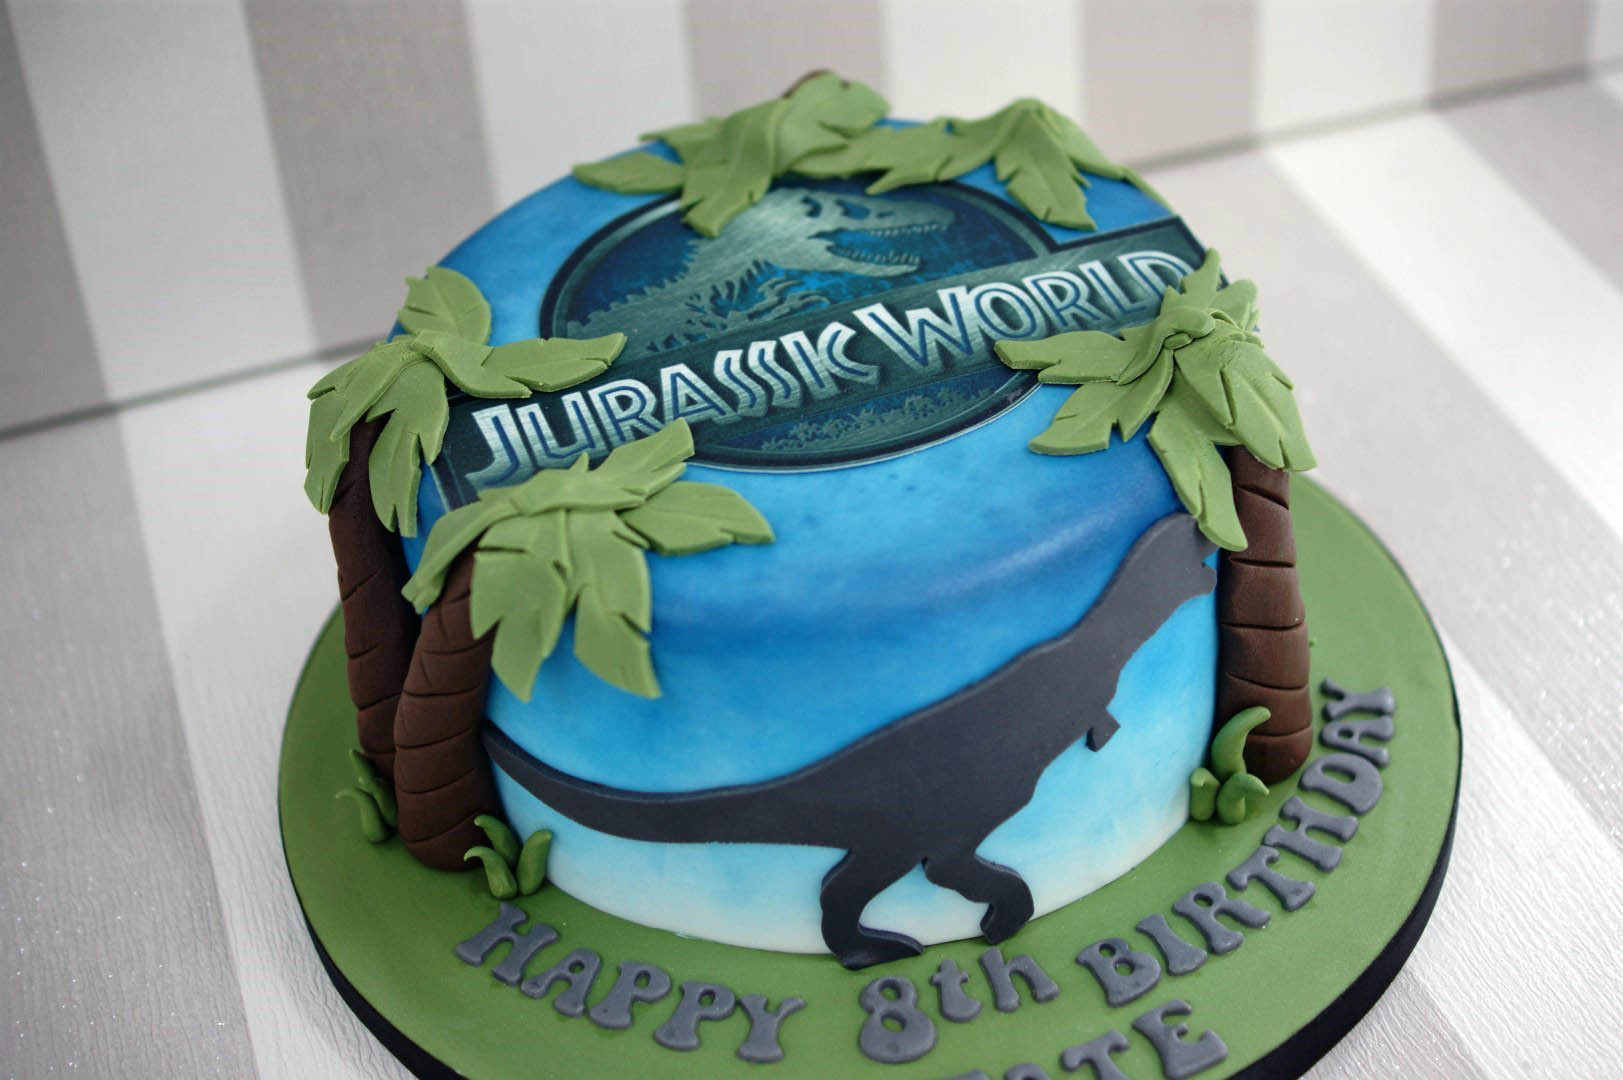 Best ideas about Jurassic World Birthday Cake . Save or Pin Jurassic World 8th Birthday Cake Bakealous Now.